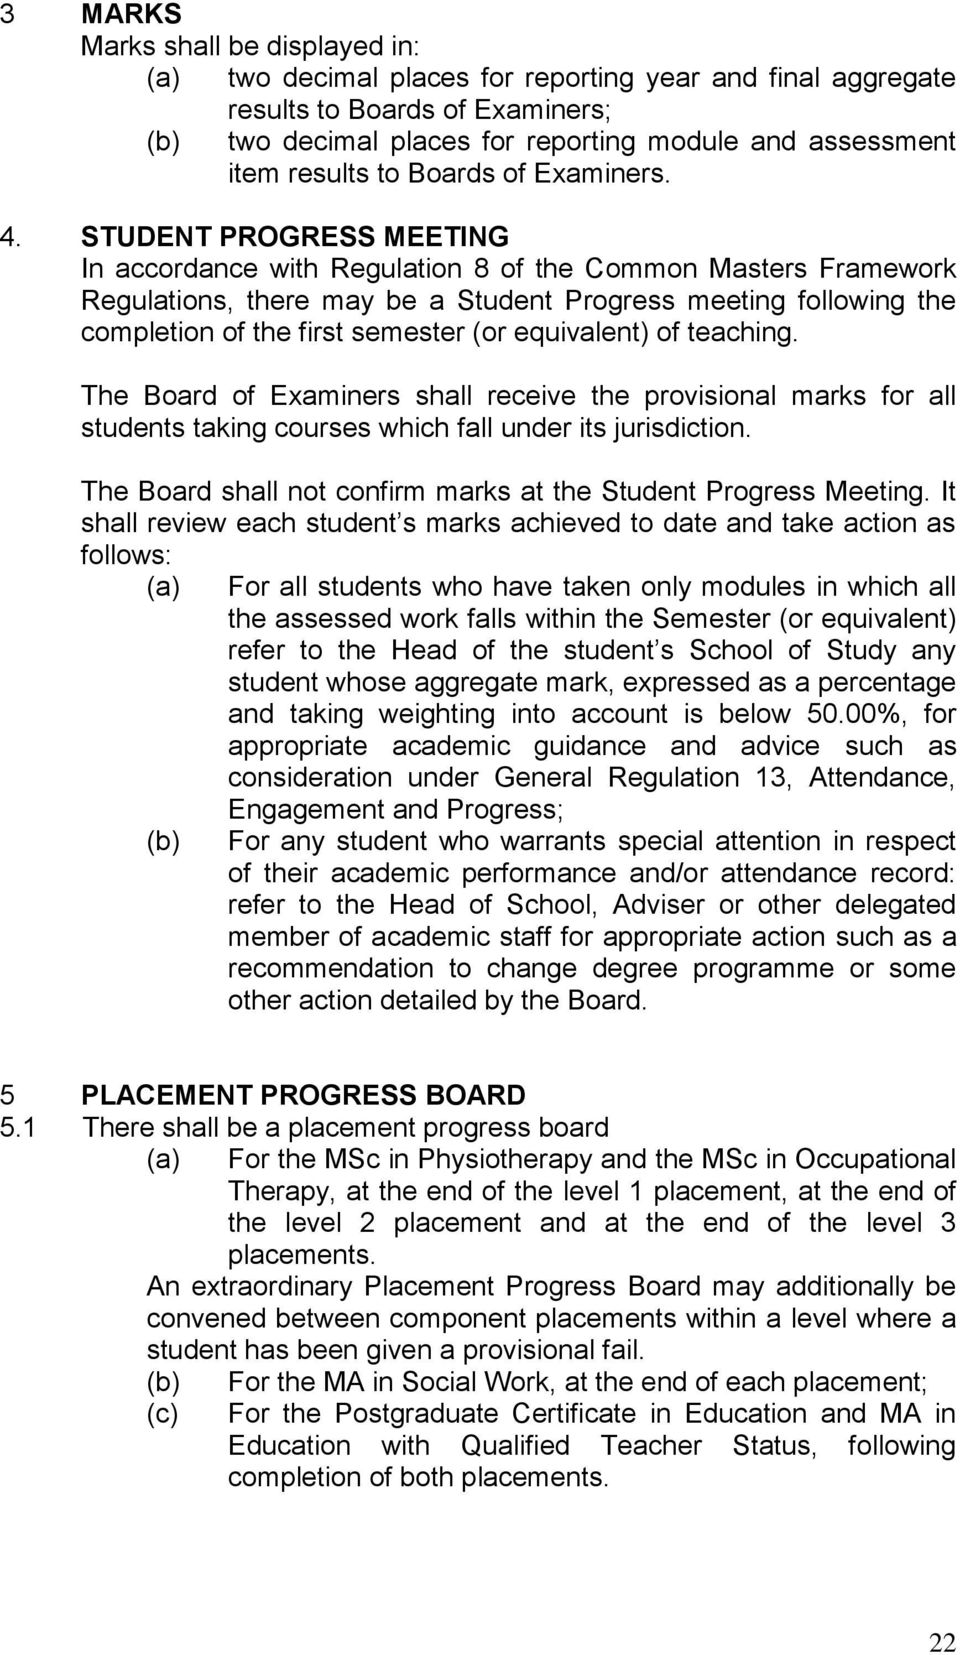 STUDENT PROGRESS MEETING In accordance with Regulation 8 of the Common Masters Framework Regulations, there may be a Student Progress meeting following the completion of the first semester (or